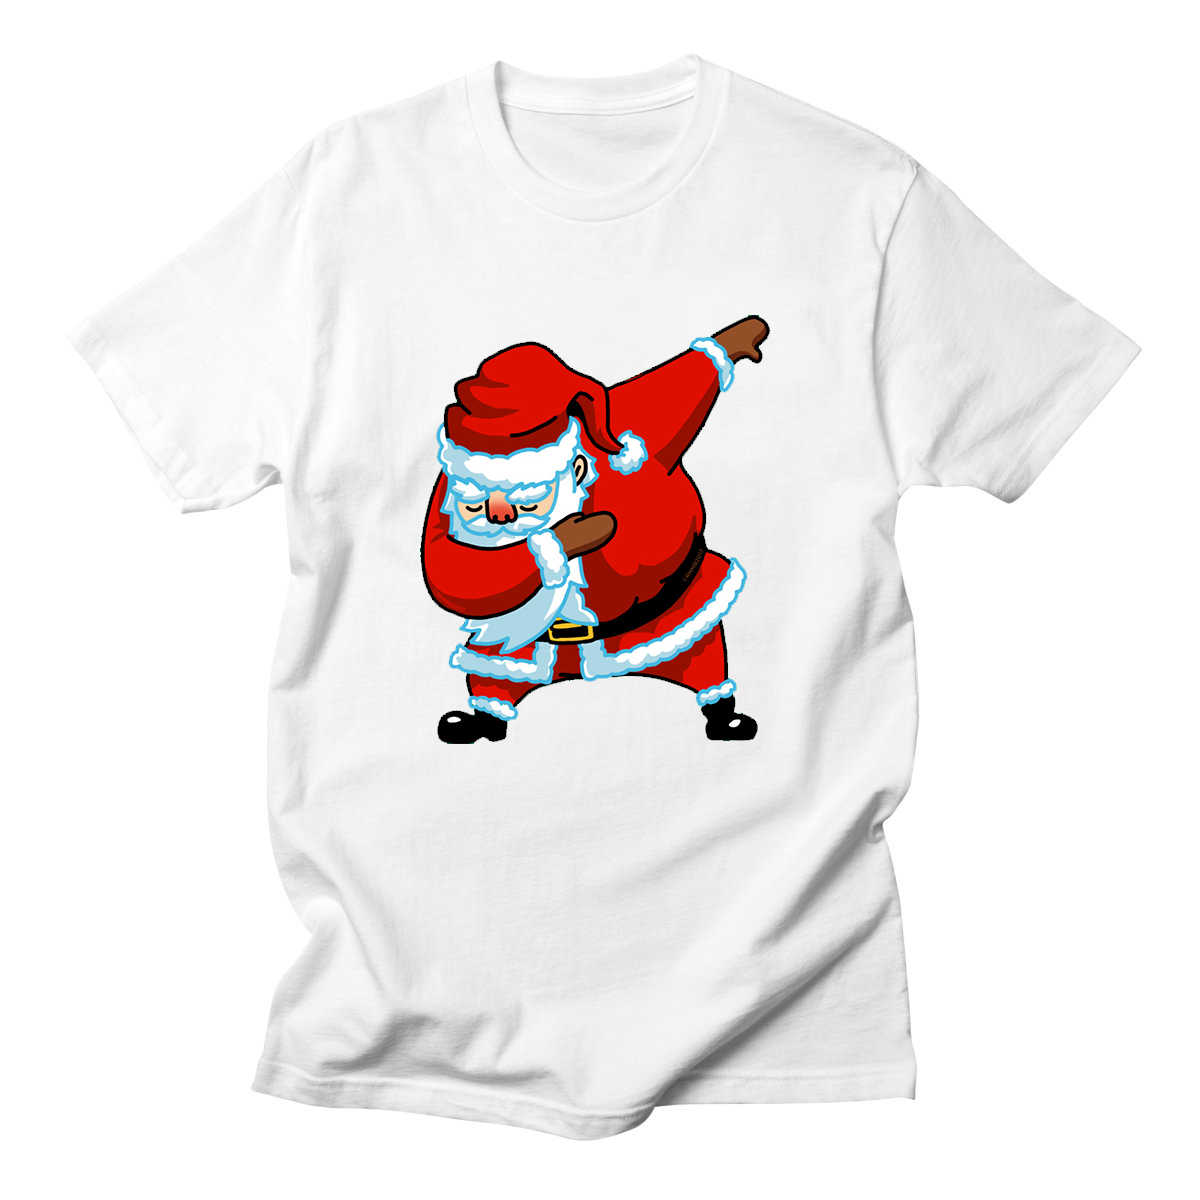 7048ca4ad LettBao Santa Gingerbread Man Design Men's T-Shirt Christmas New Year Gift  Cotton Print Tee